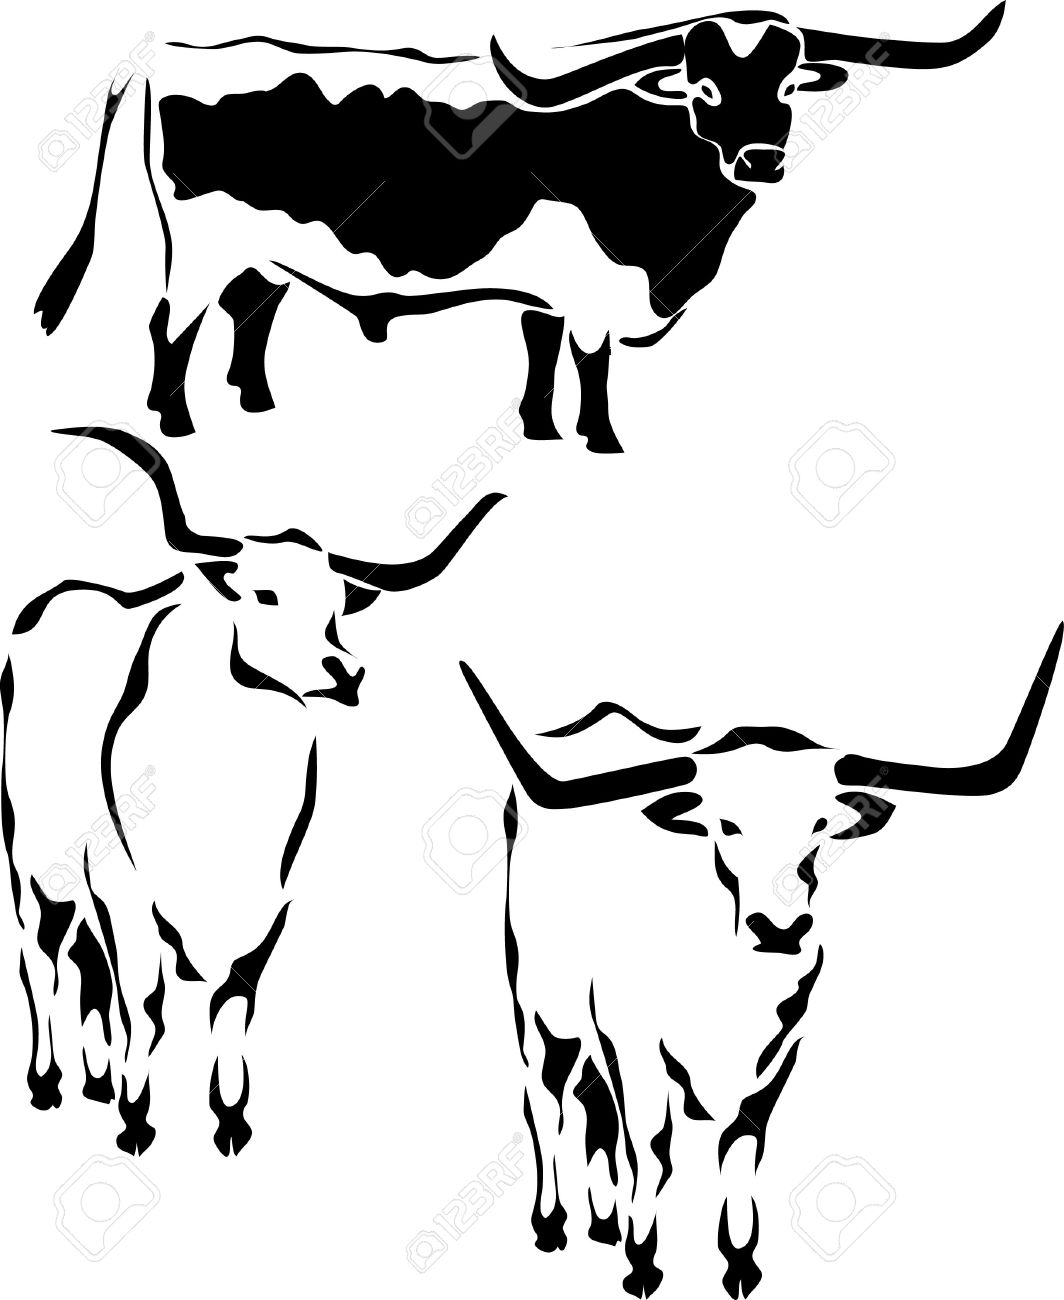 Cattle clipart longhorn cattle. Texas drawing at getdrawings